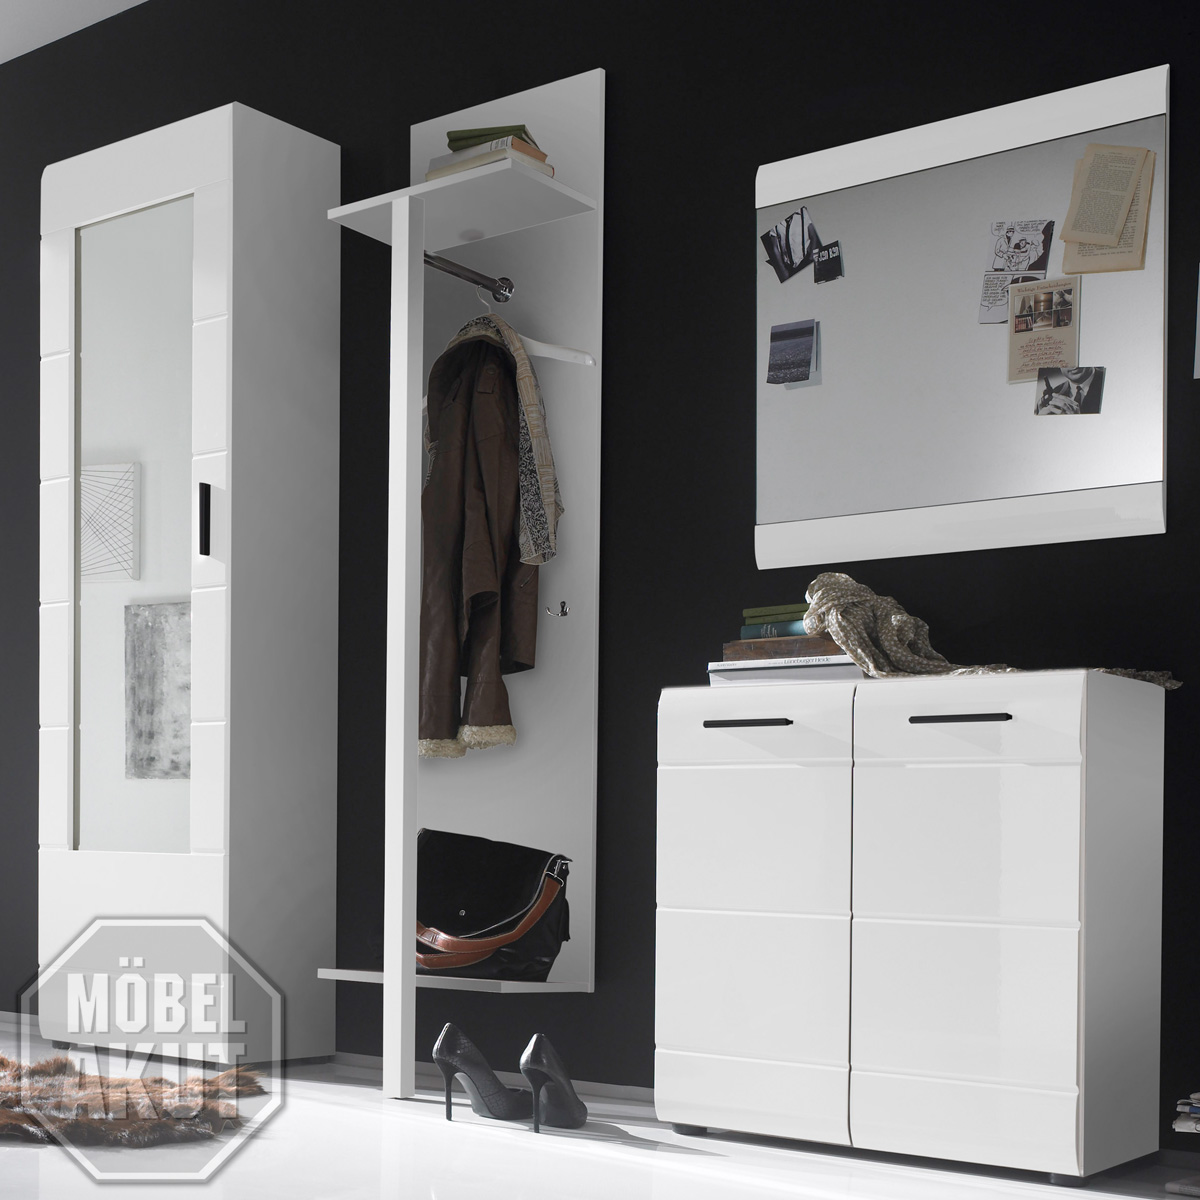 garderoben set anoma garderobe schrank kommode wei wei hochglanz mit spiegel ebay. Black Bedroom Furniture Sets. Home Design Ideas